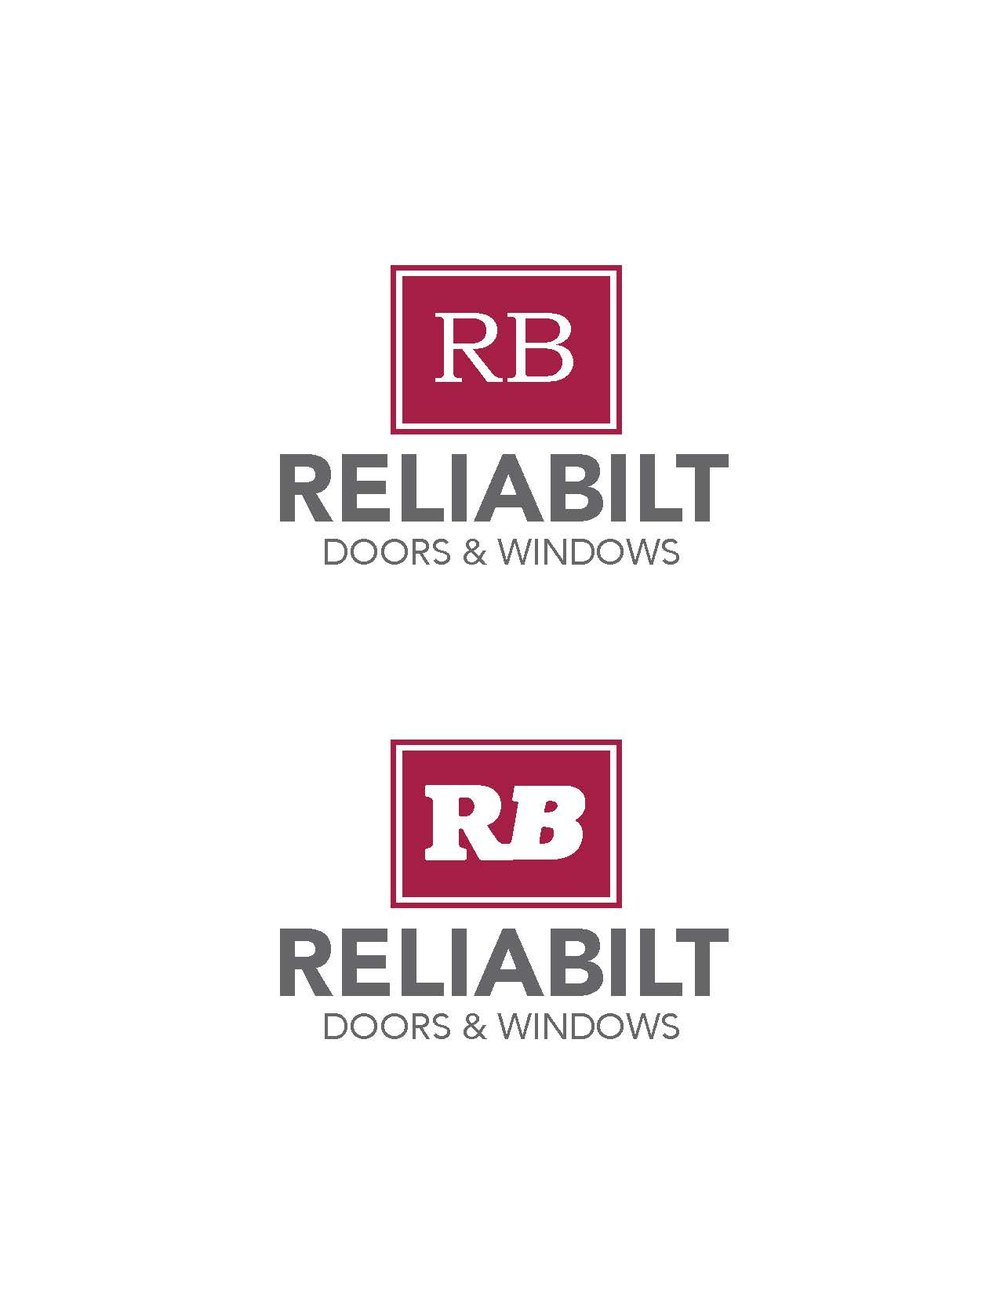 sc 1 st  erin k. monaghan creative & Redesigned logo for RB Doors u0026 Windows u2014 ERIN K. MONAGHAN CREATIVE